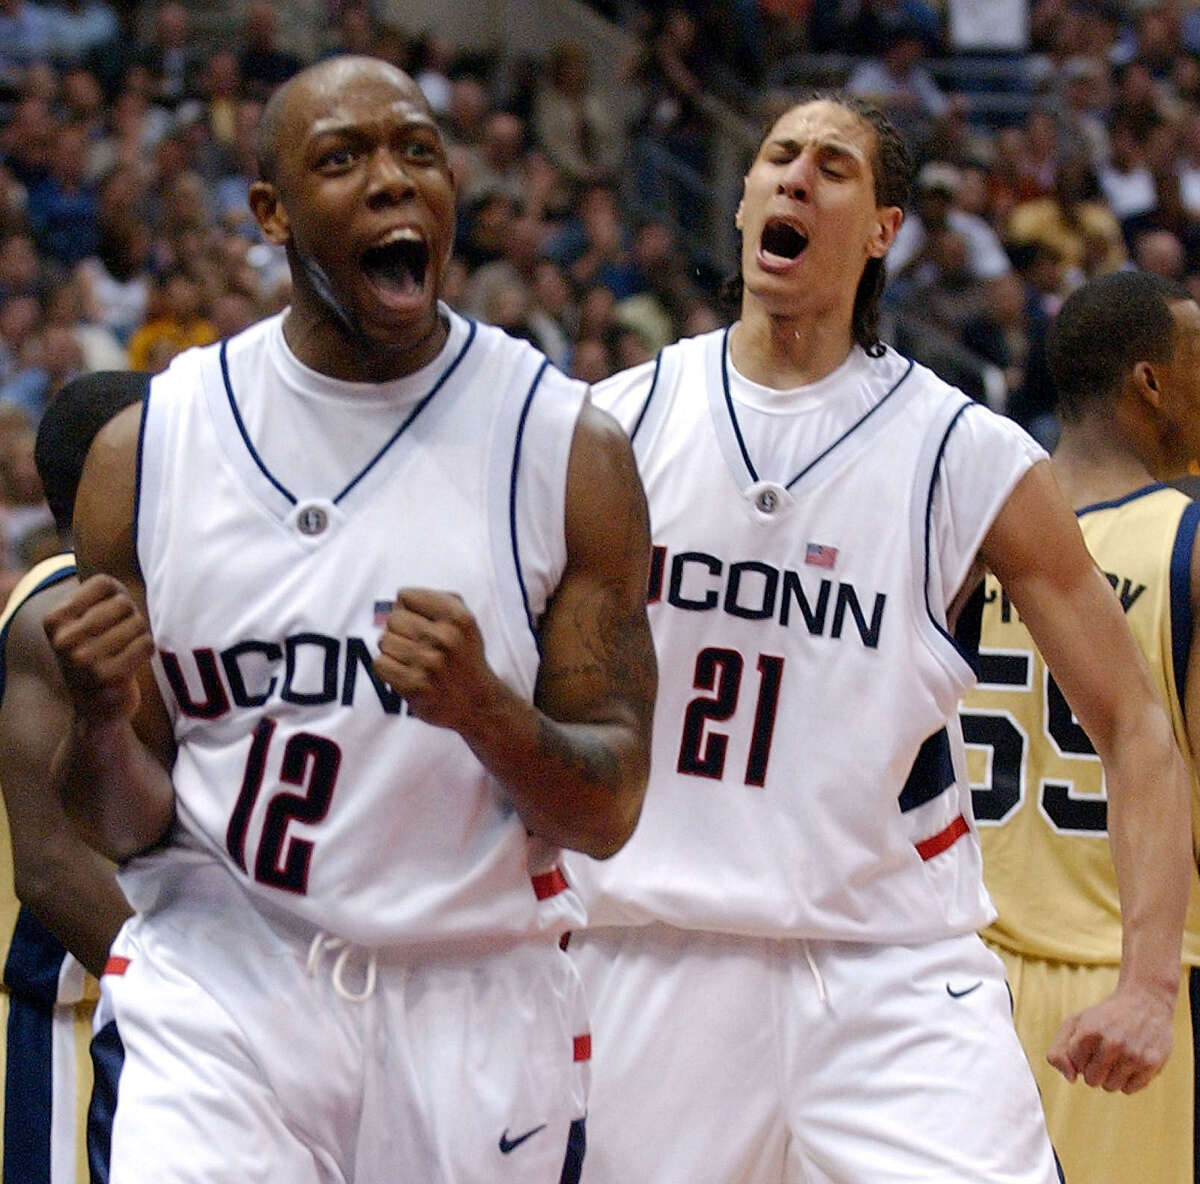 UConn's Taliek Brown (12) and Josh Boone (21) won the 2004 title game.